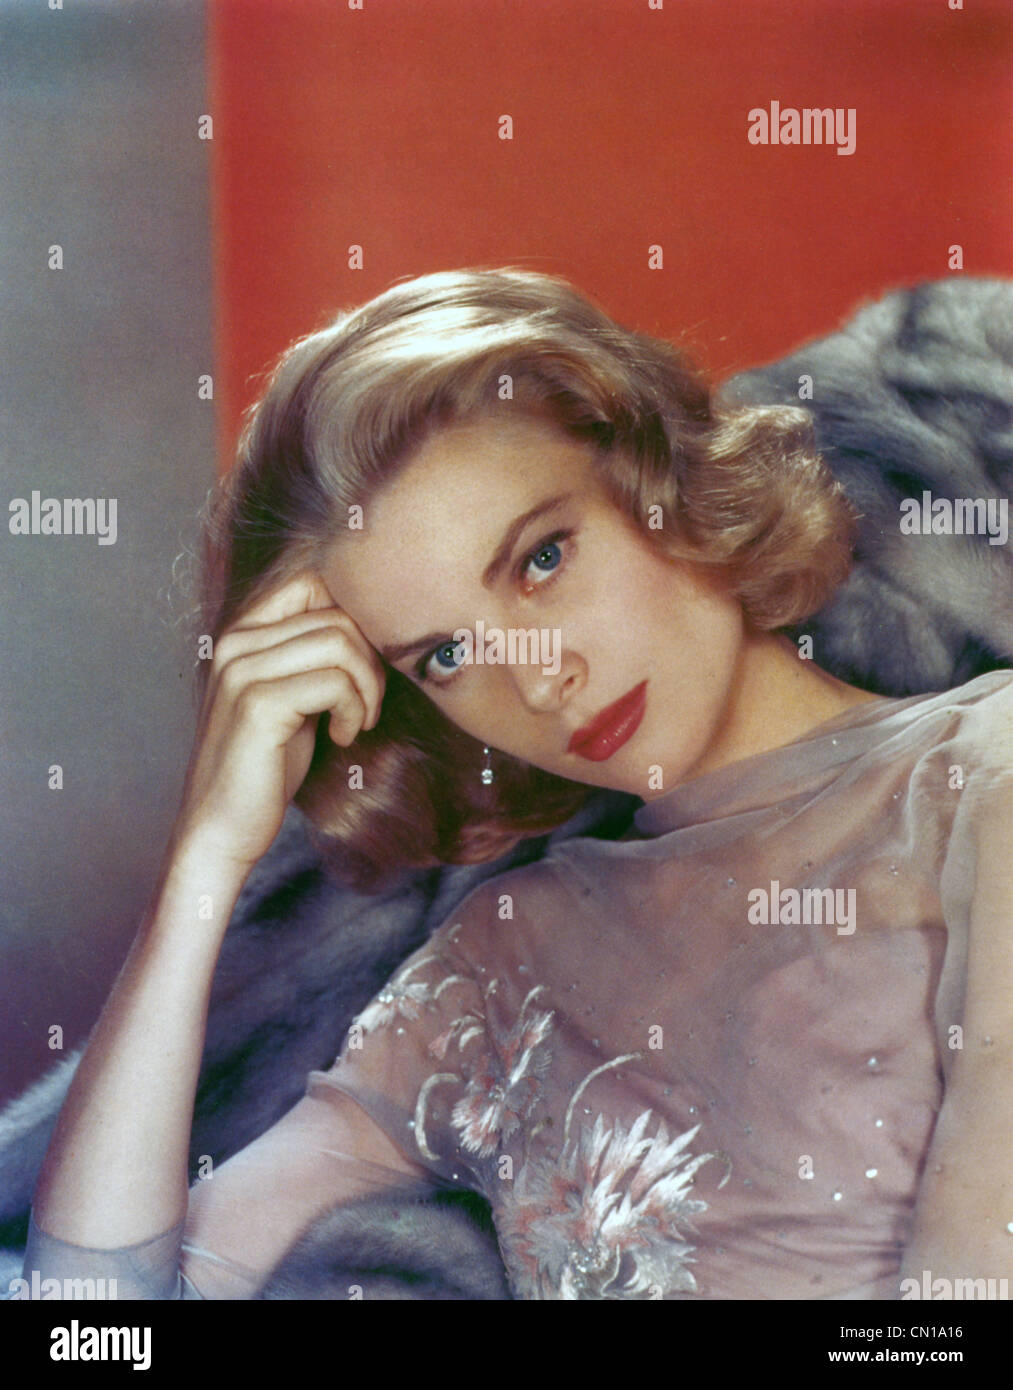 GRACE KELLY (1929-1982) US film actress in 1956 - Stock Image